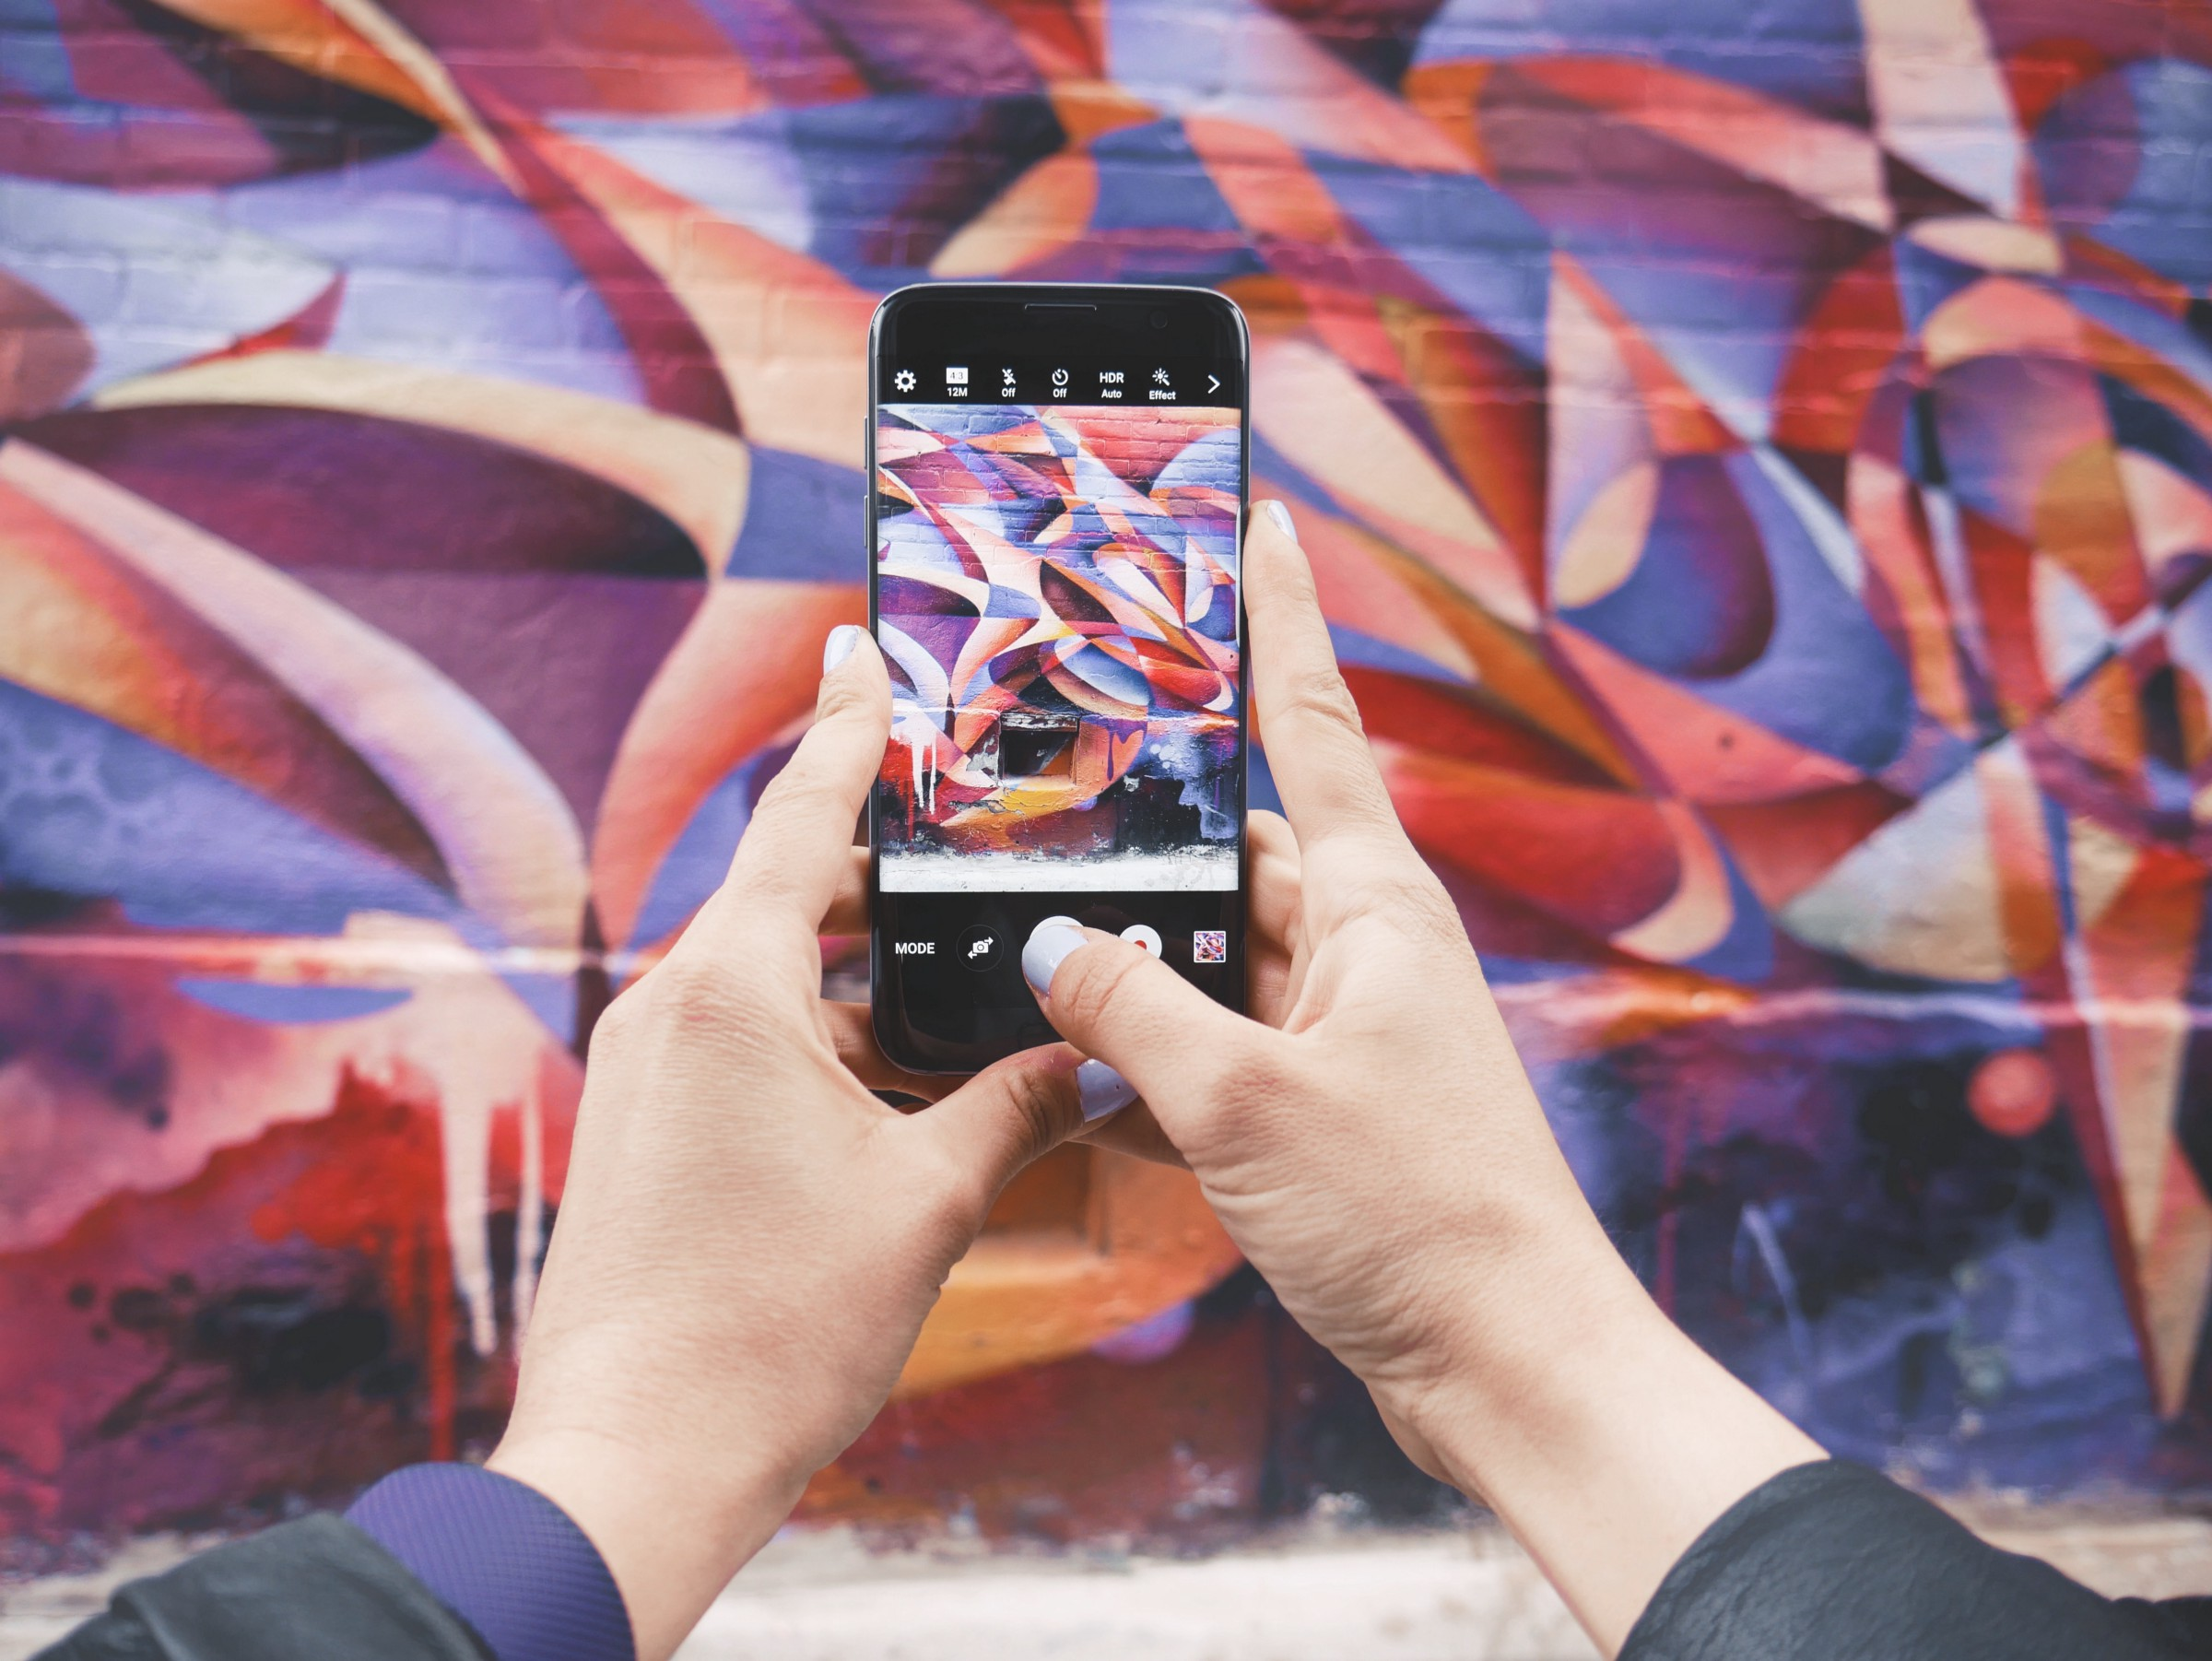 Hacking Instagram: How To Add Infinite Hashtags To Your Post